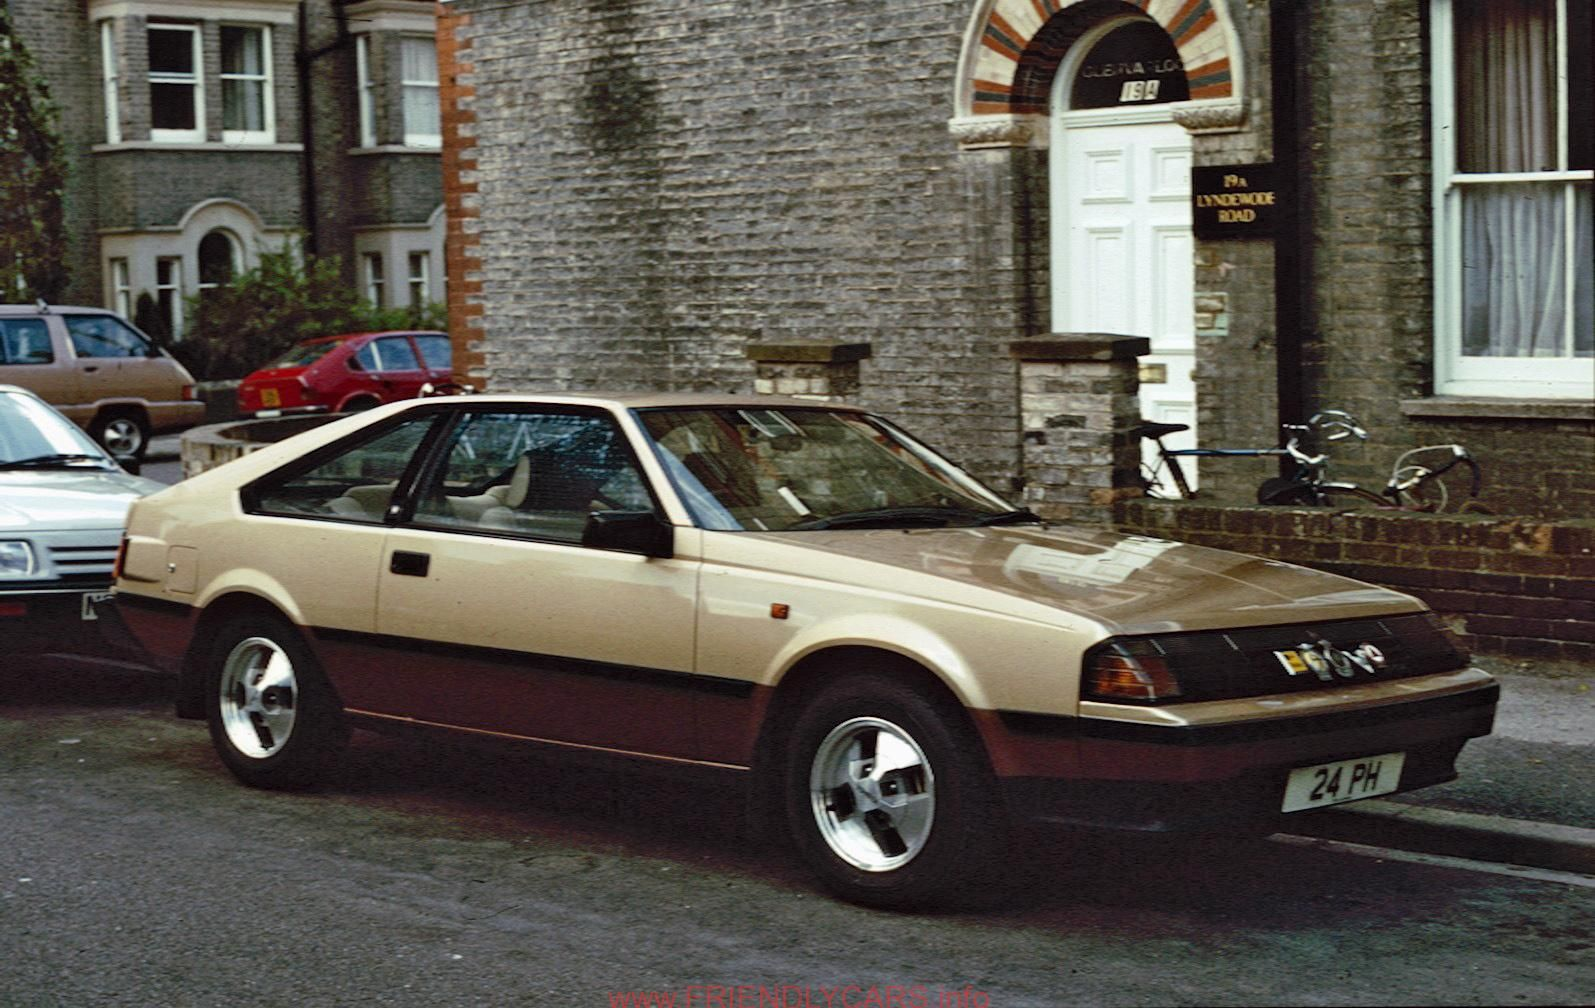 Awesome 1980 toyota hilux lifted car images hd toyota celica wikipedia the free encyclopedia